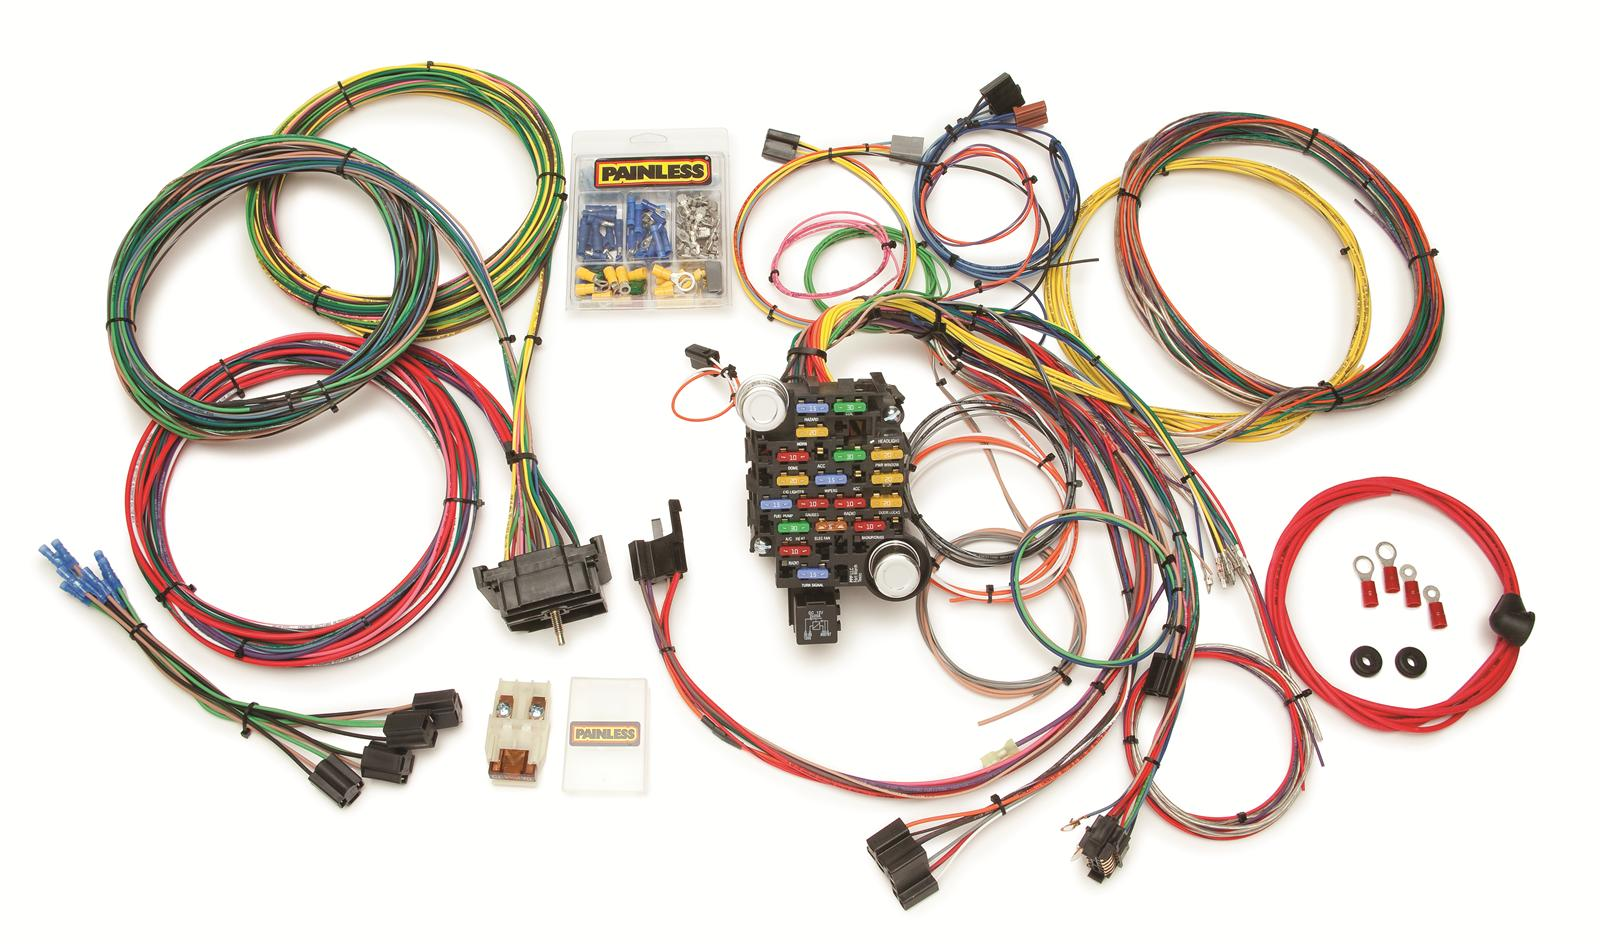 Custom Made Wiring Harness Kits Diagram Libraries Specialties Shipping Painless Performance Third Levelpainless Gmc Chevy Truck Harnesses 10206 Free